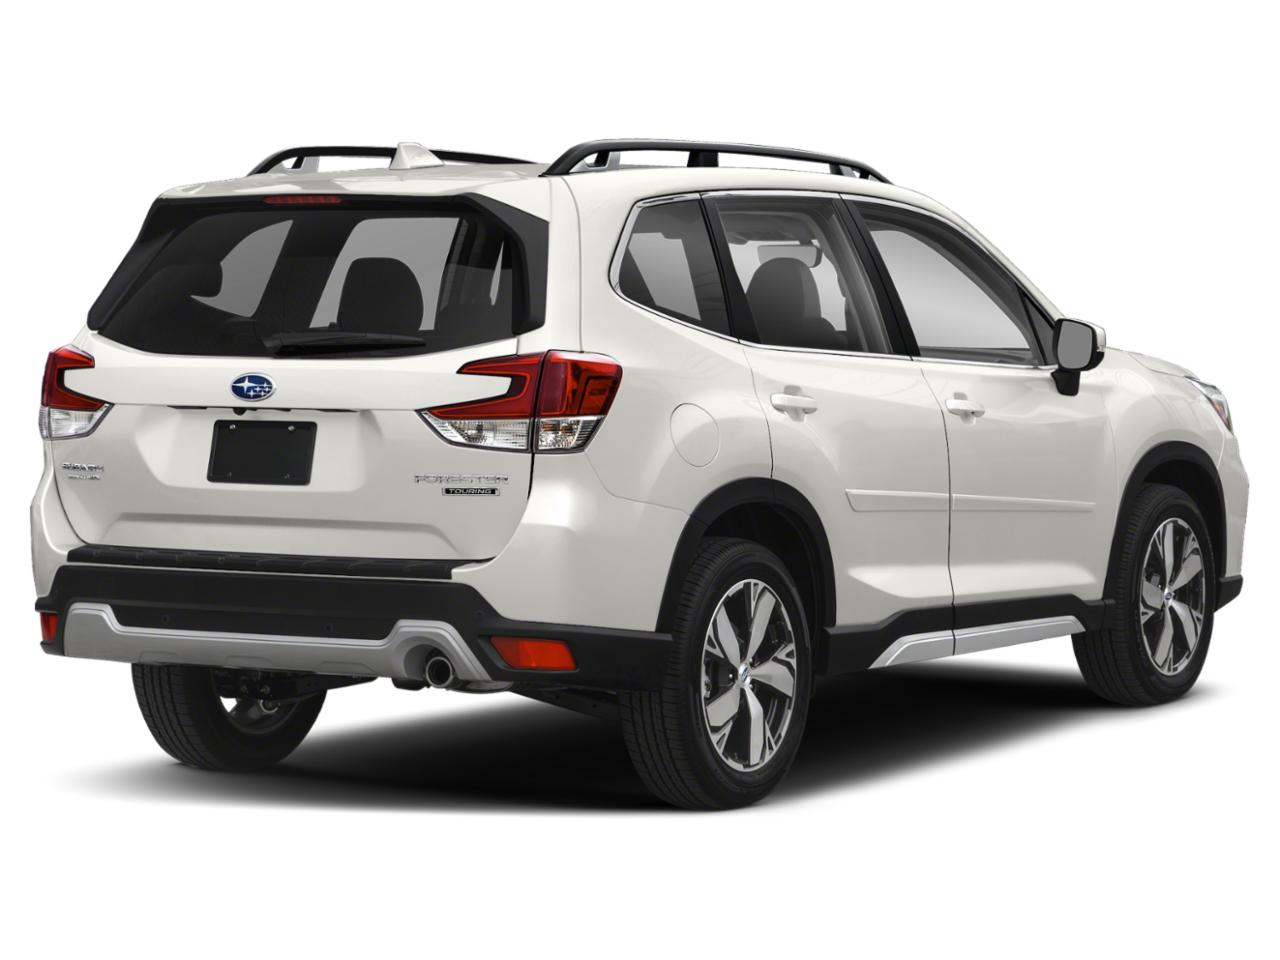 2020 Subaru Forester TOURING SUV Slide